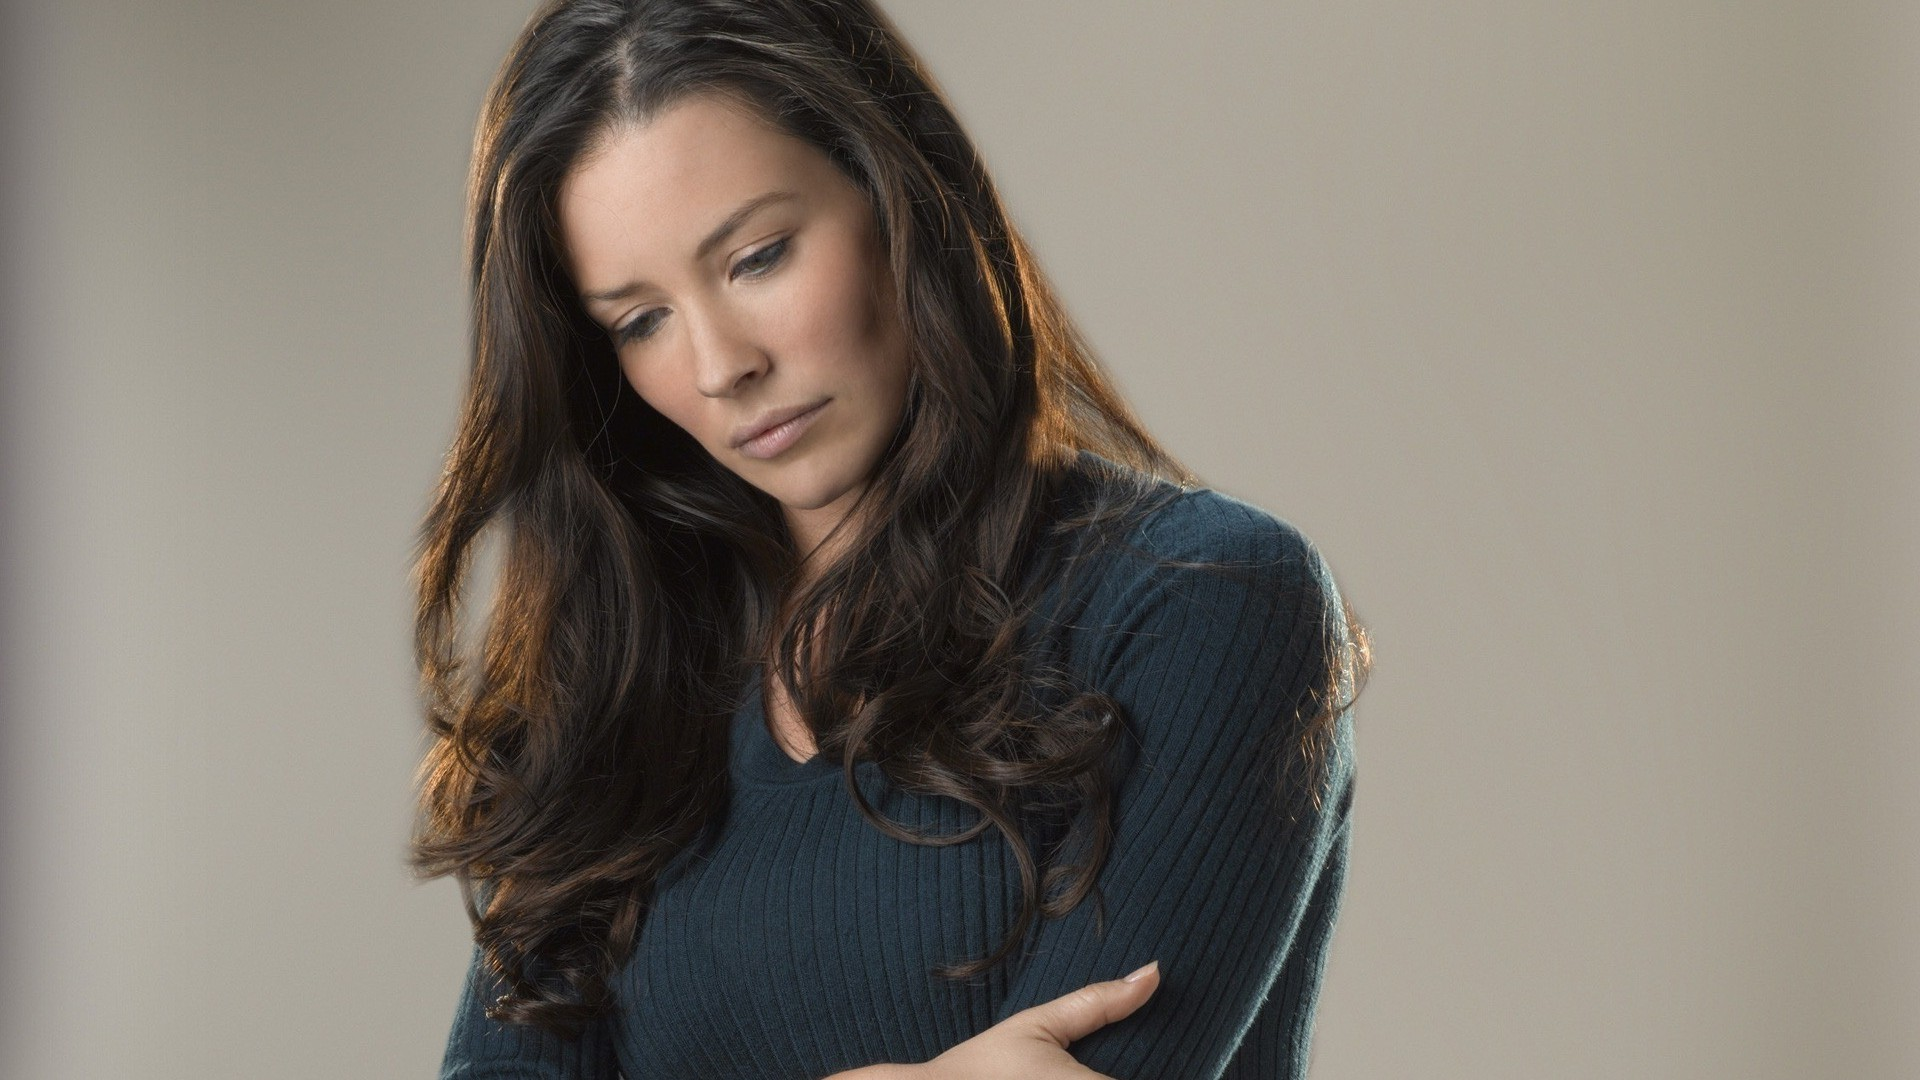 Evangeline Lilly wallpaper 3828 1920x1080